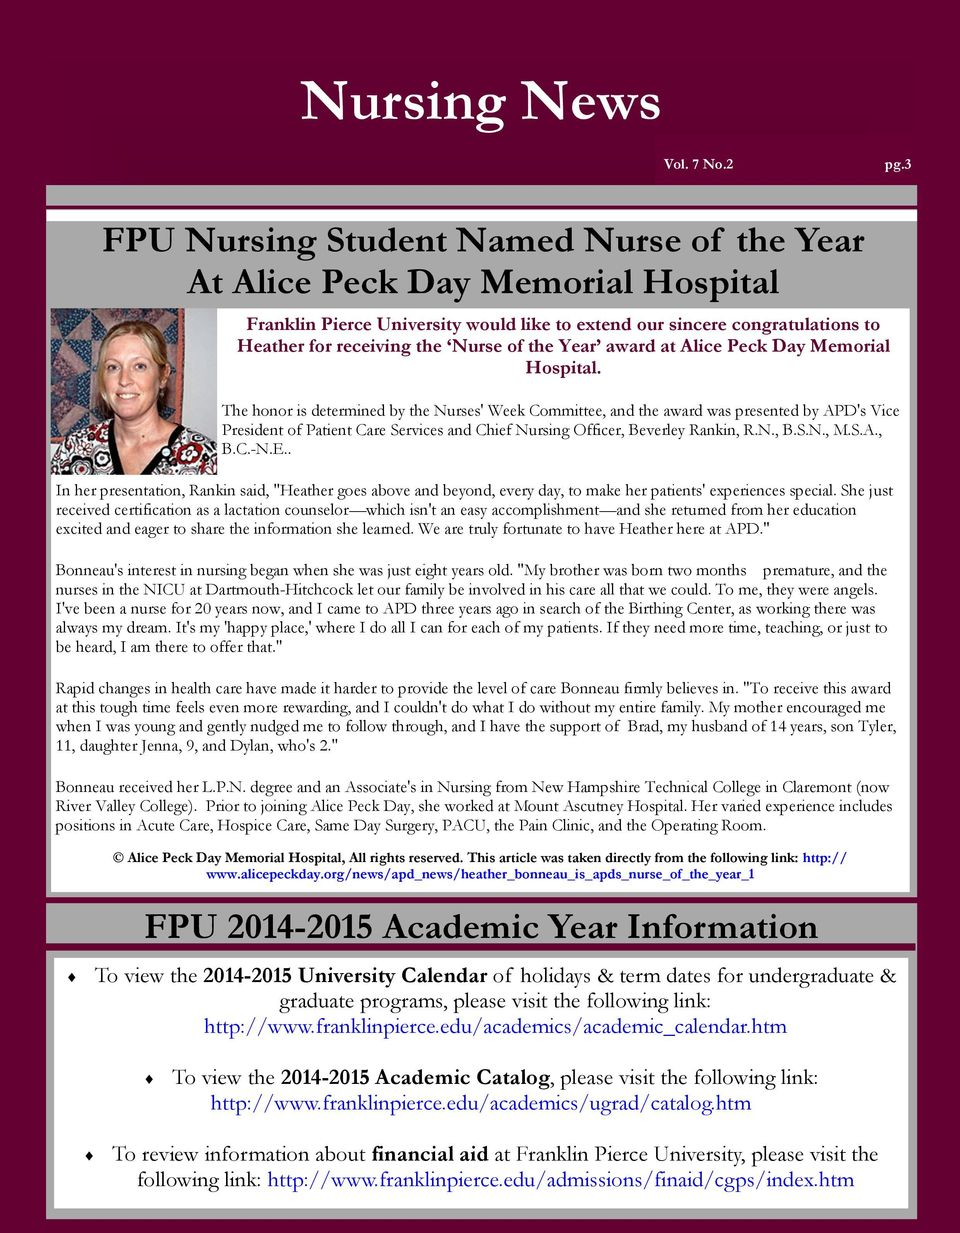 The honor is determined by the Nurses' Week Committee, and the award was presented by APD's Vice President of Patient Care Services and Chief Nursing Officer, Beverley Rankin, R.N., B.S.N., M.S.A., B.C.-N.